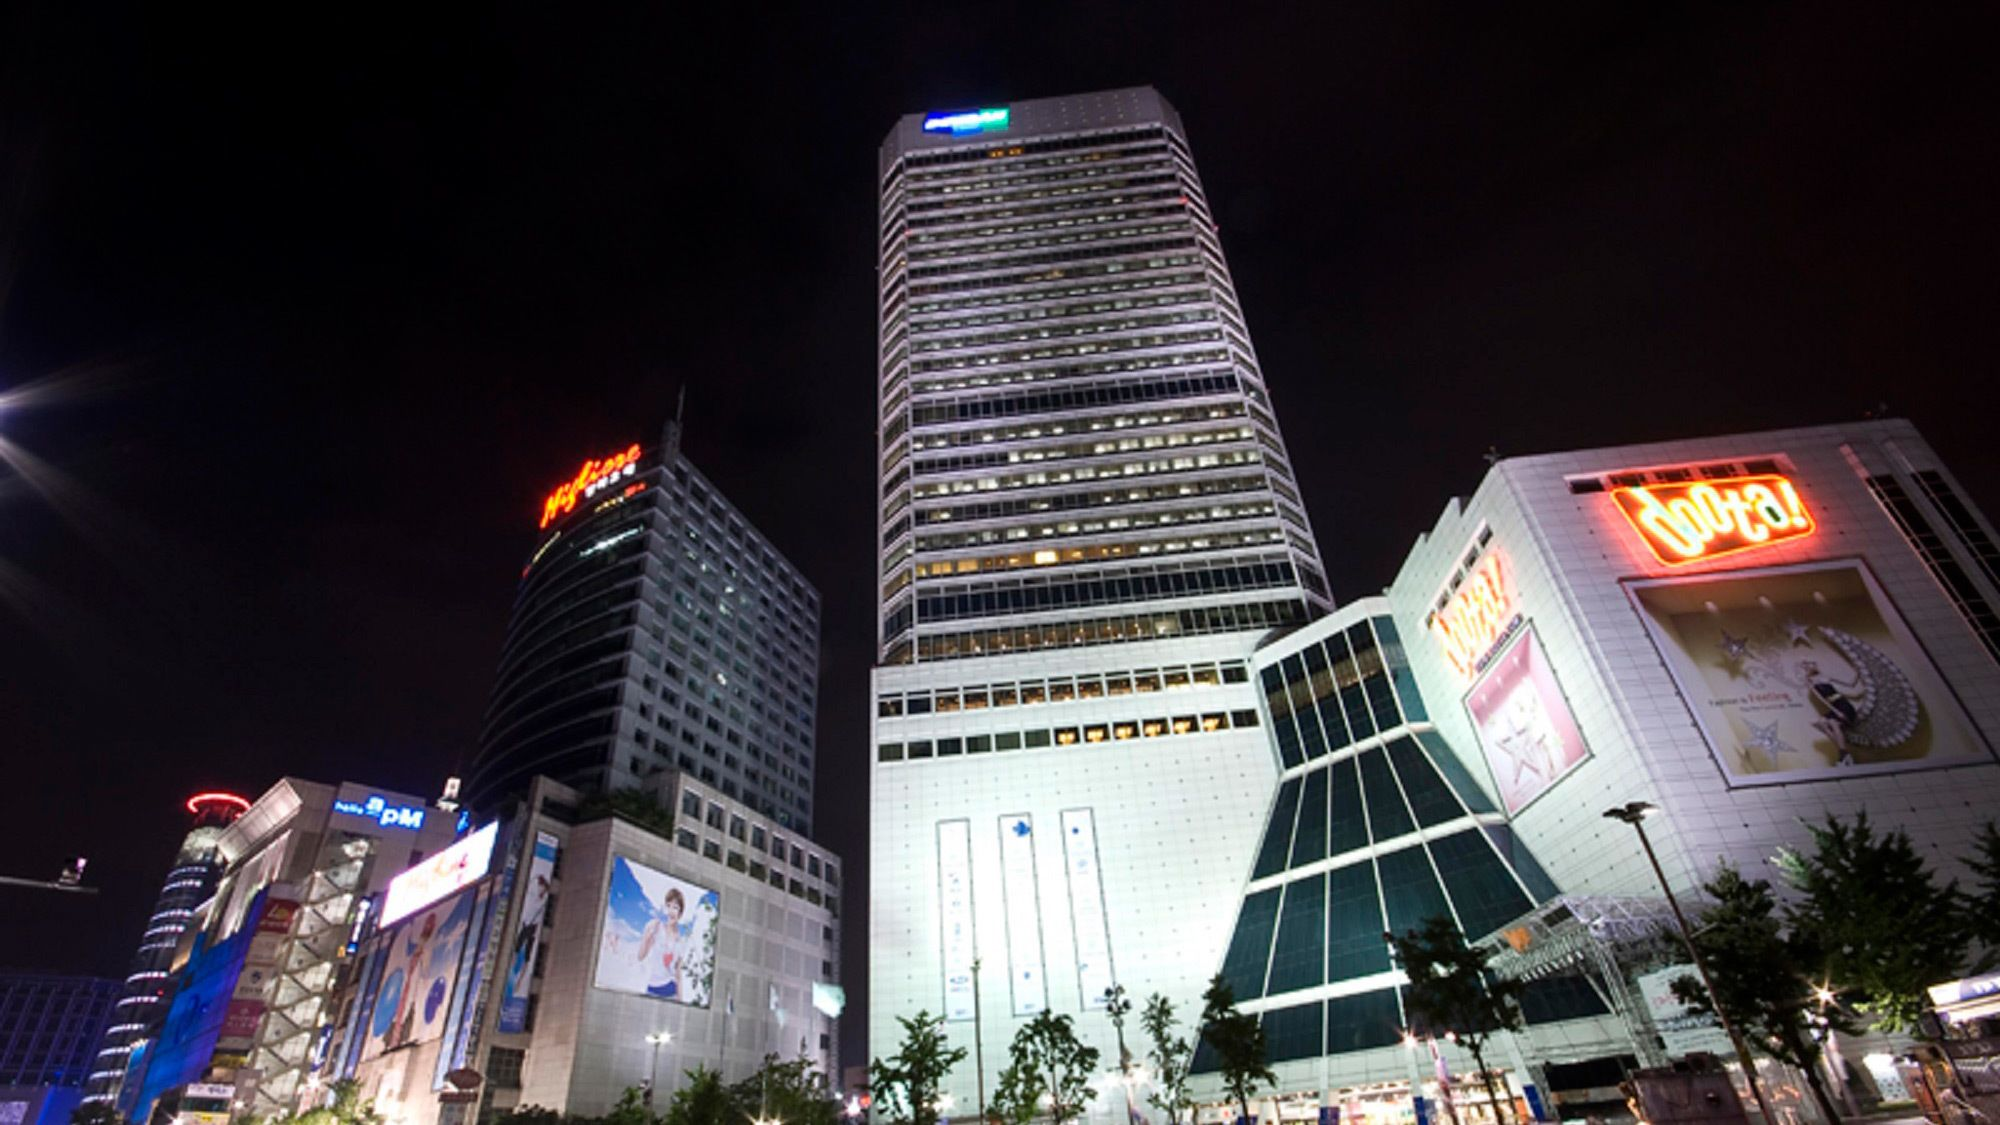 Beautiful night view of the skyscrapers in Seoul